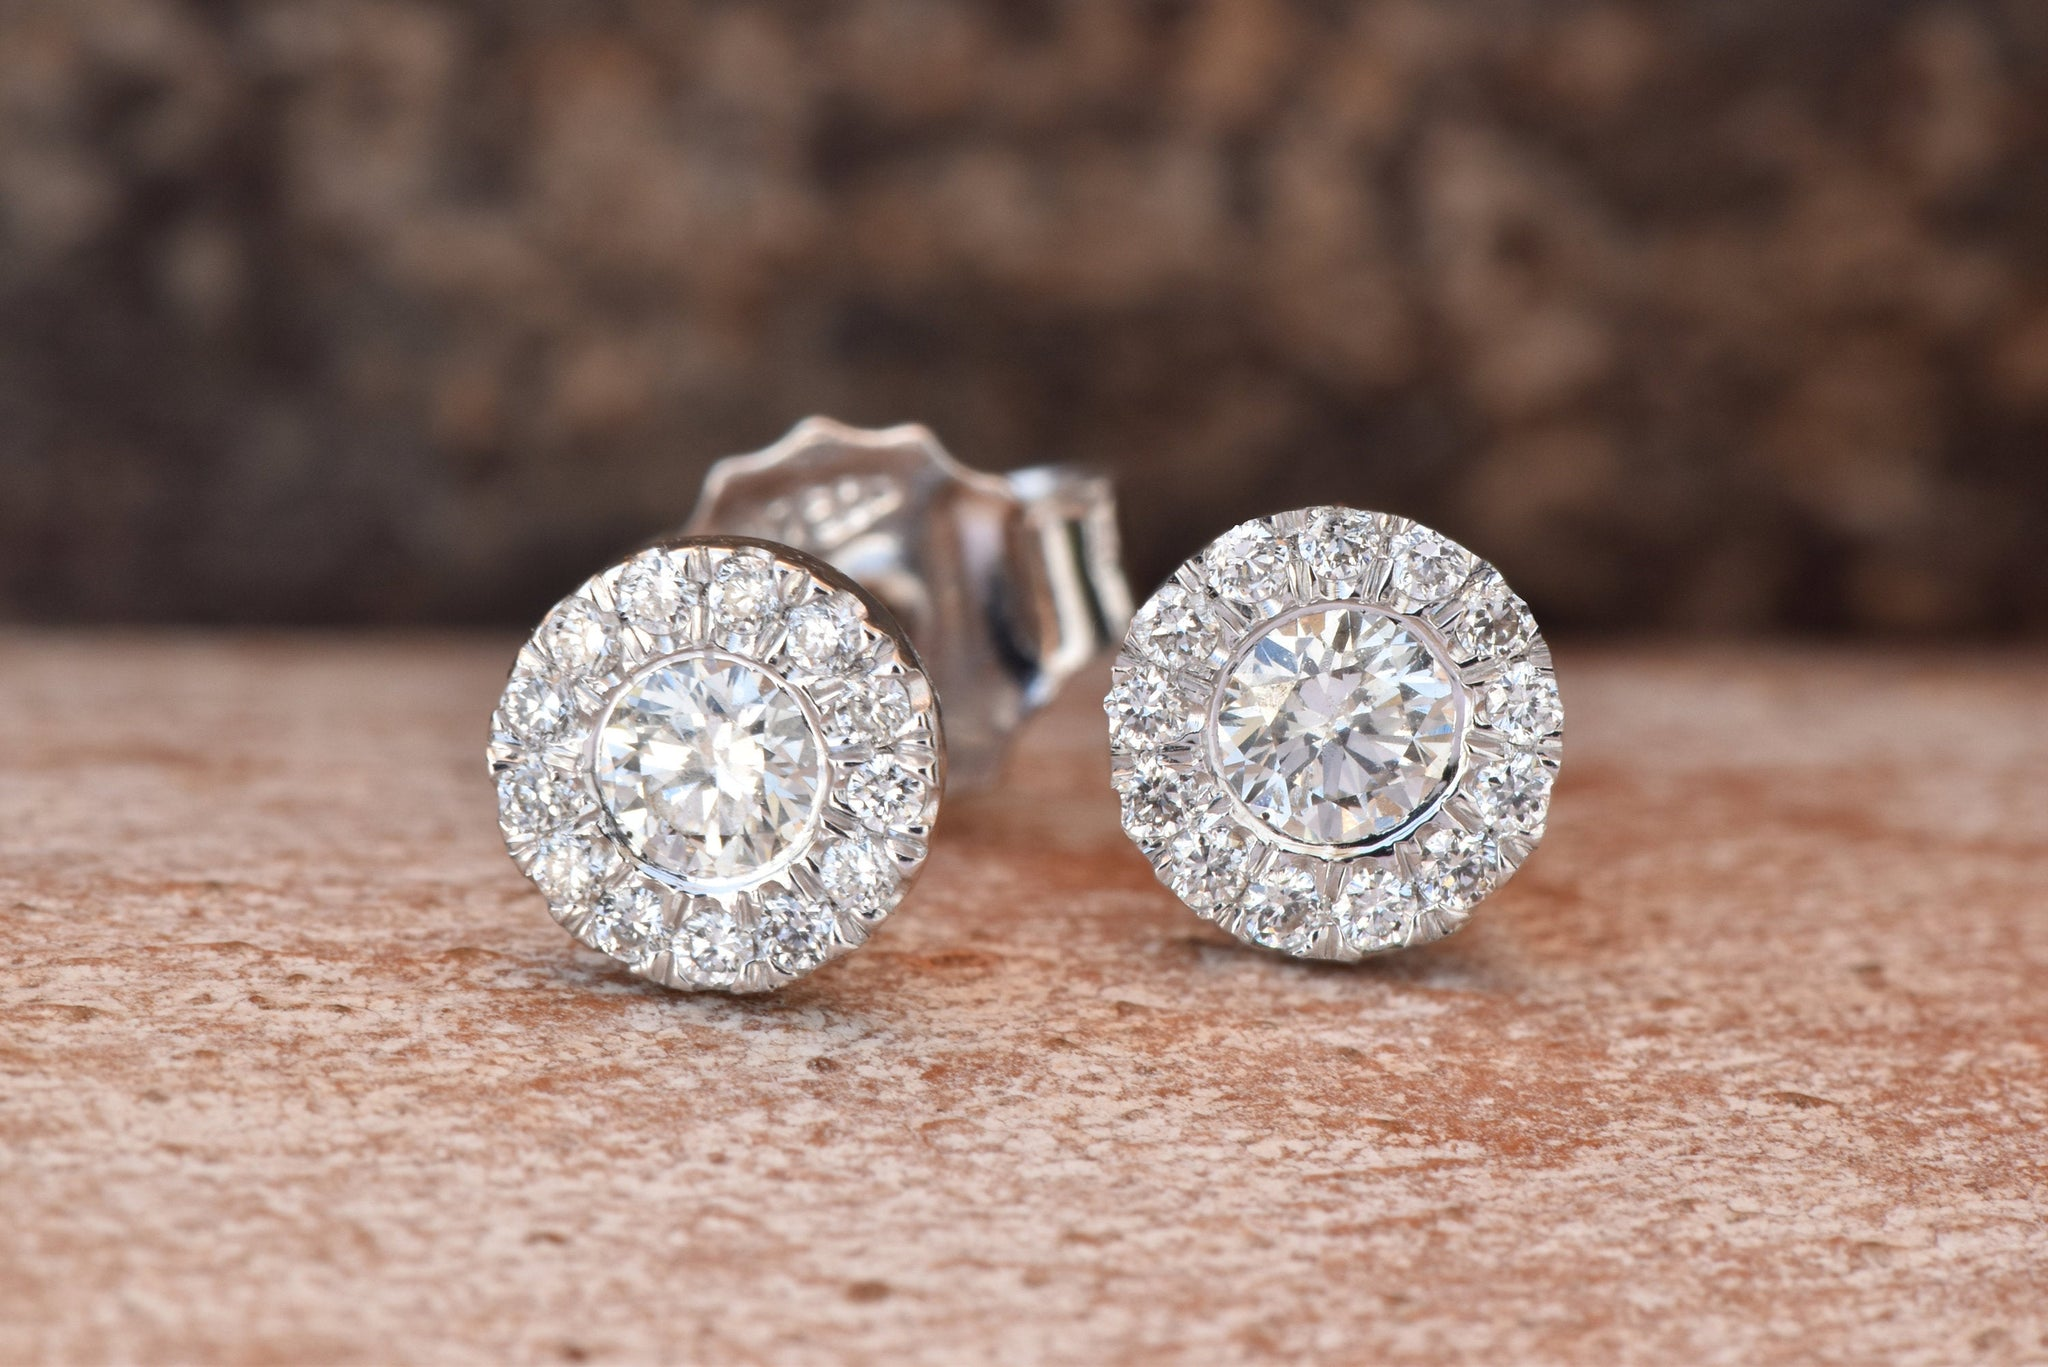 Cluster earrings-Halo Diamond earrings-White gold studs-Anniversary gifts-Art nouveau earrings